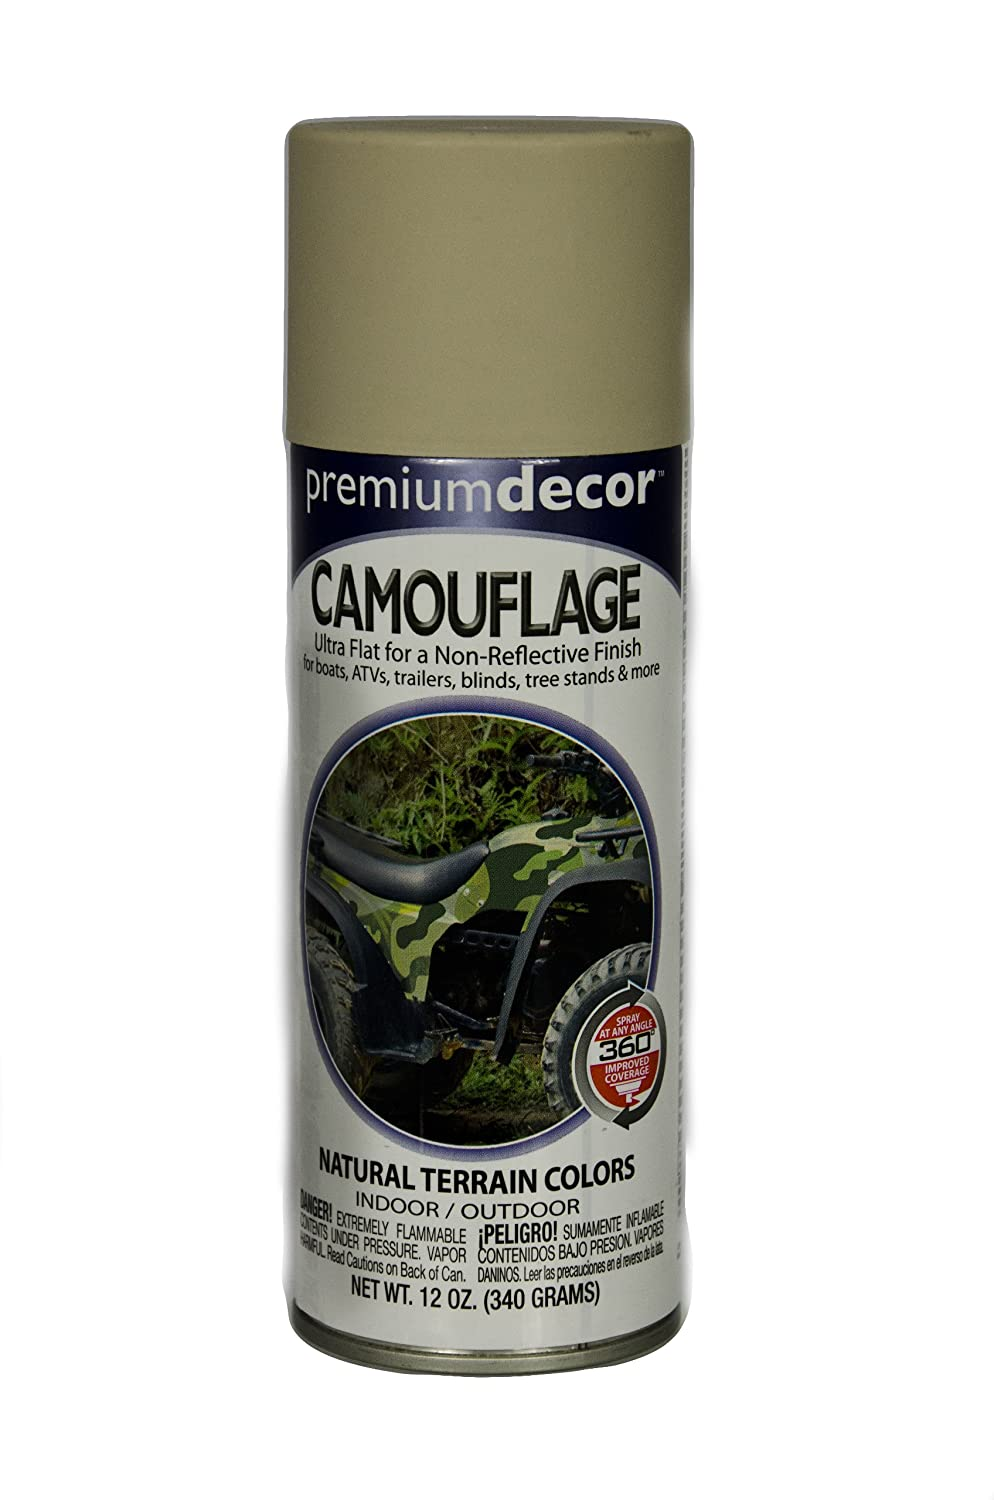 General Paint & Manufacturing PDS-180 Premium Decor Camouflage Enamel Spray Paint with 360-Degree Spray Tip, Light Khaki, 6-Pack devabys car paint spray gun tts